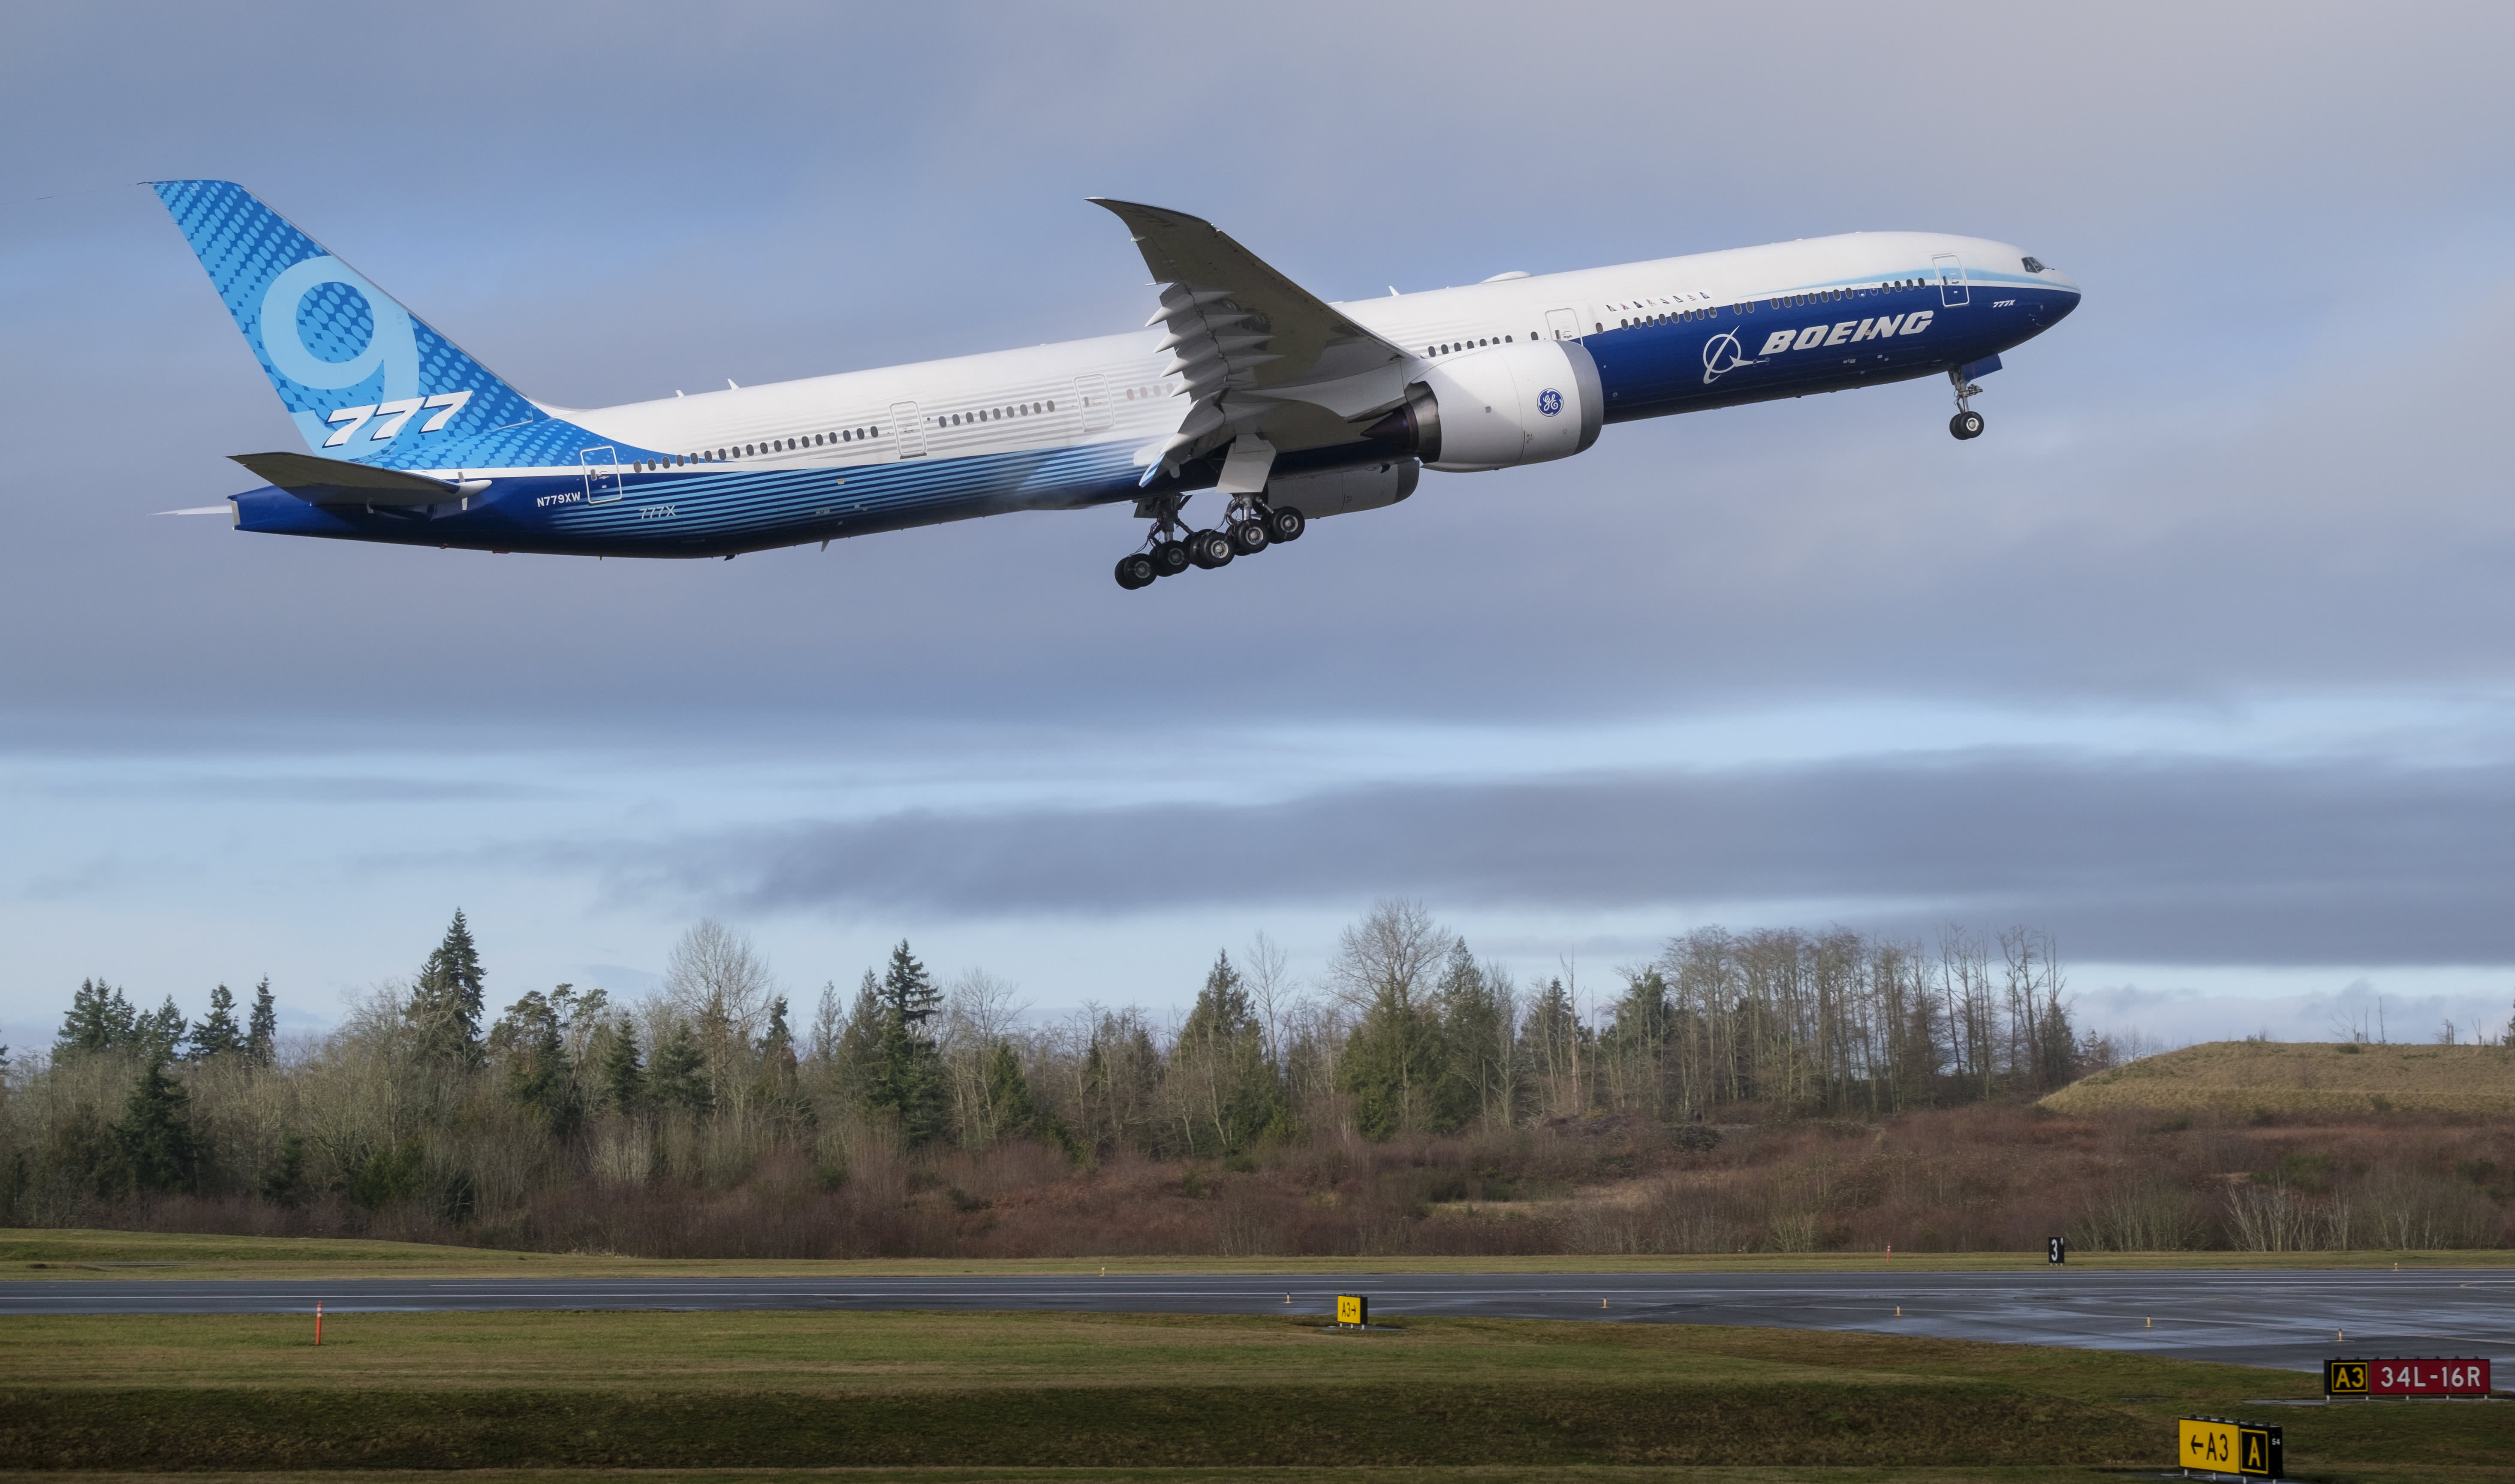 Washington state moves to drop Boeing tax break to head off possible EU tariffs